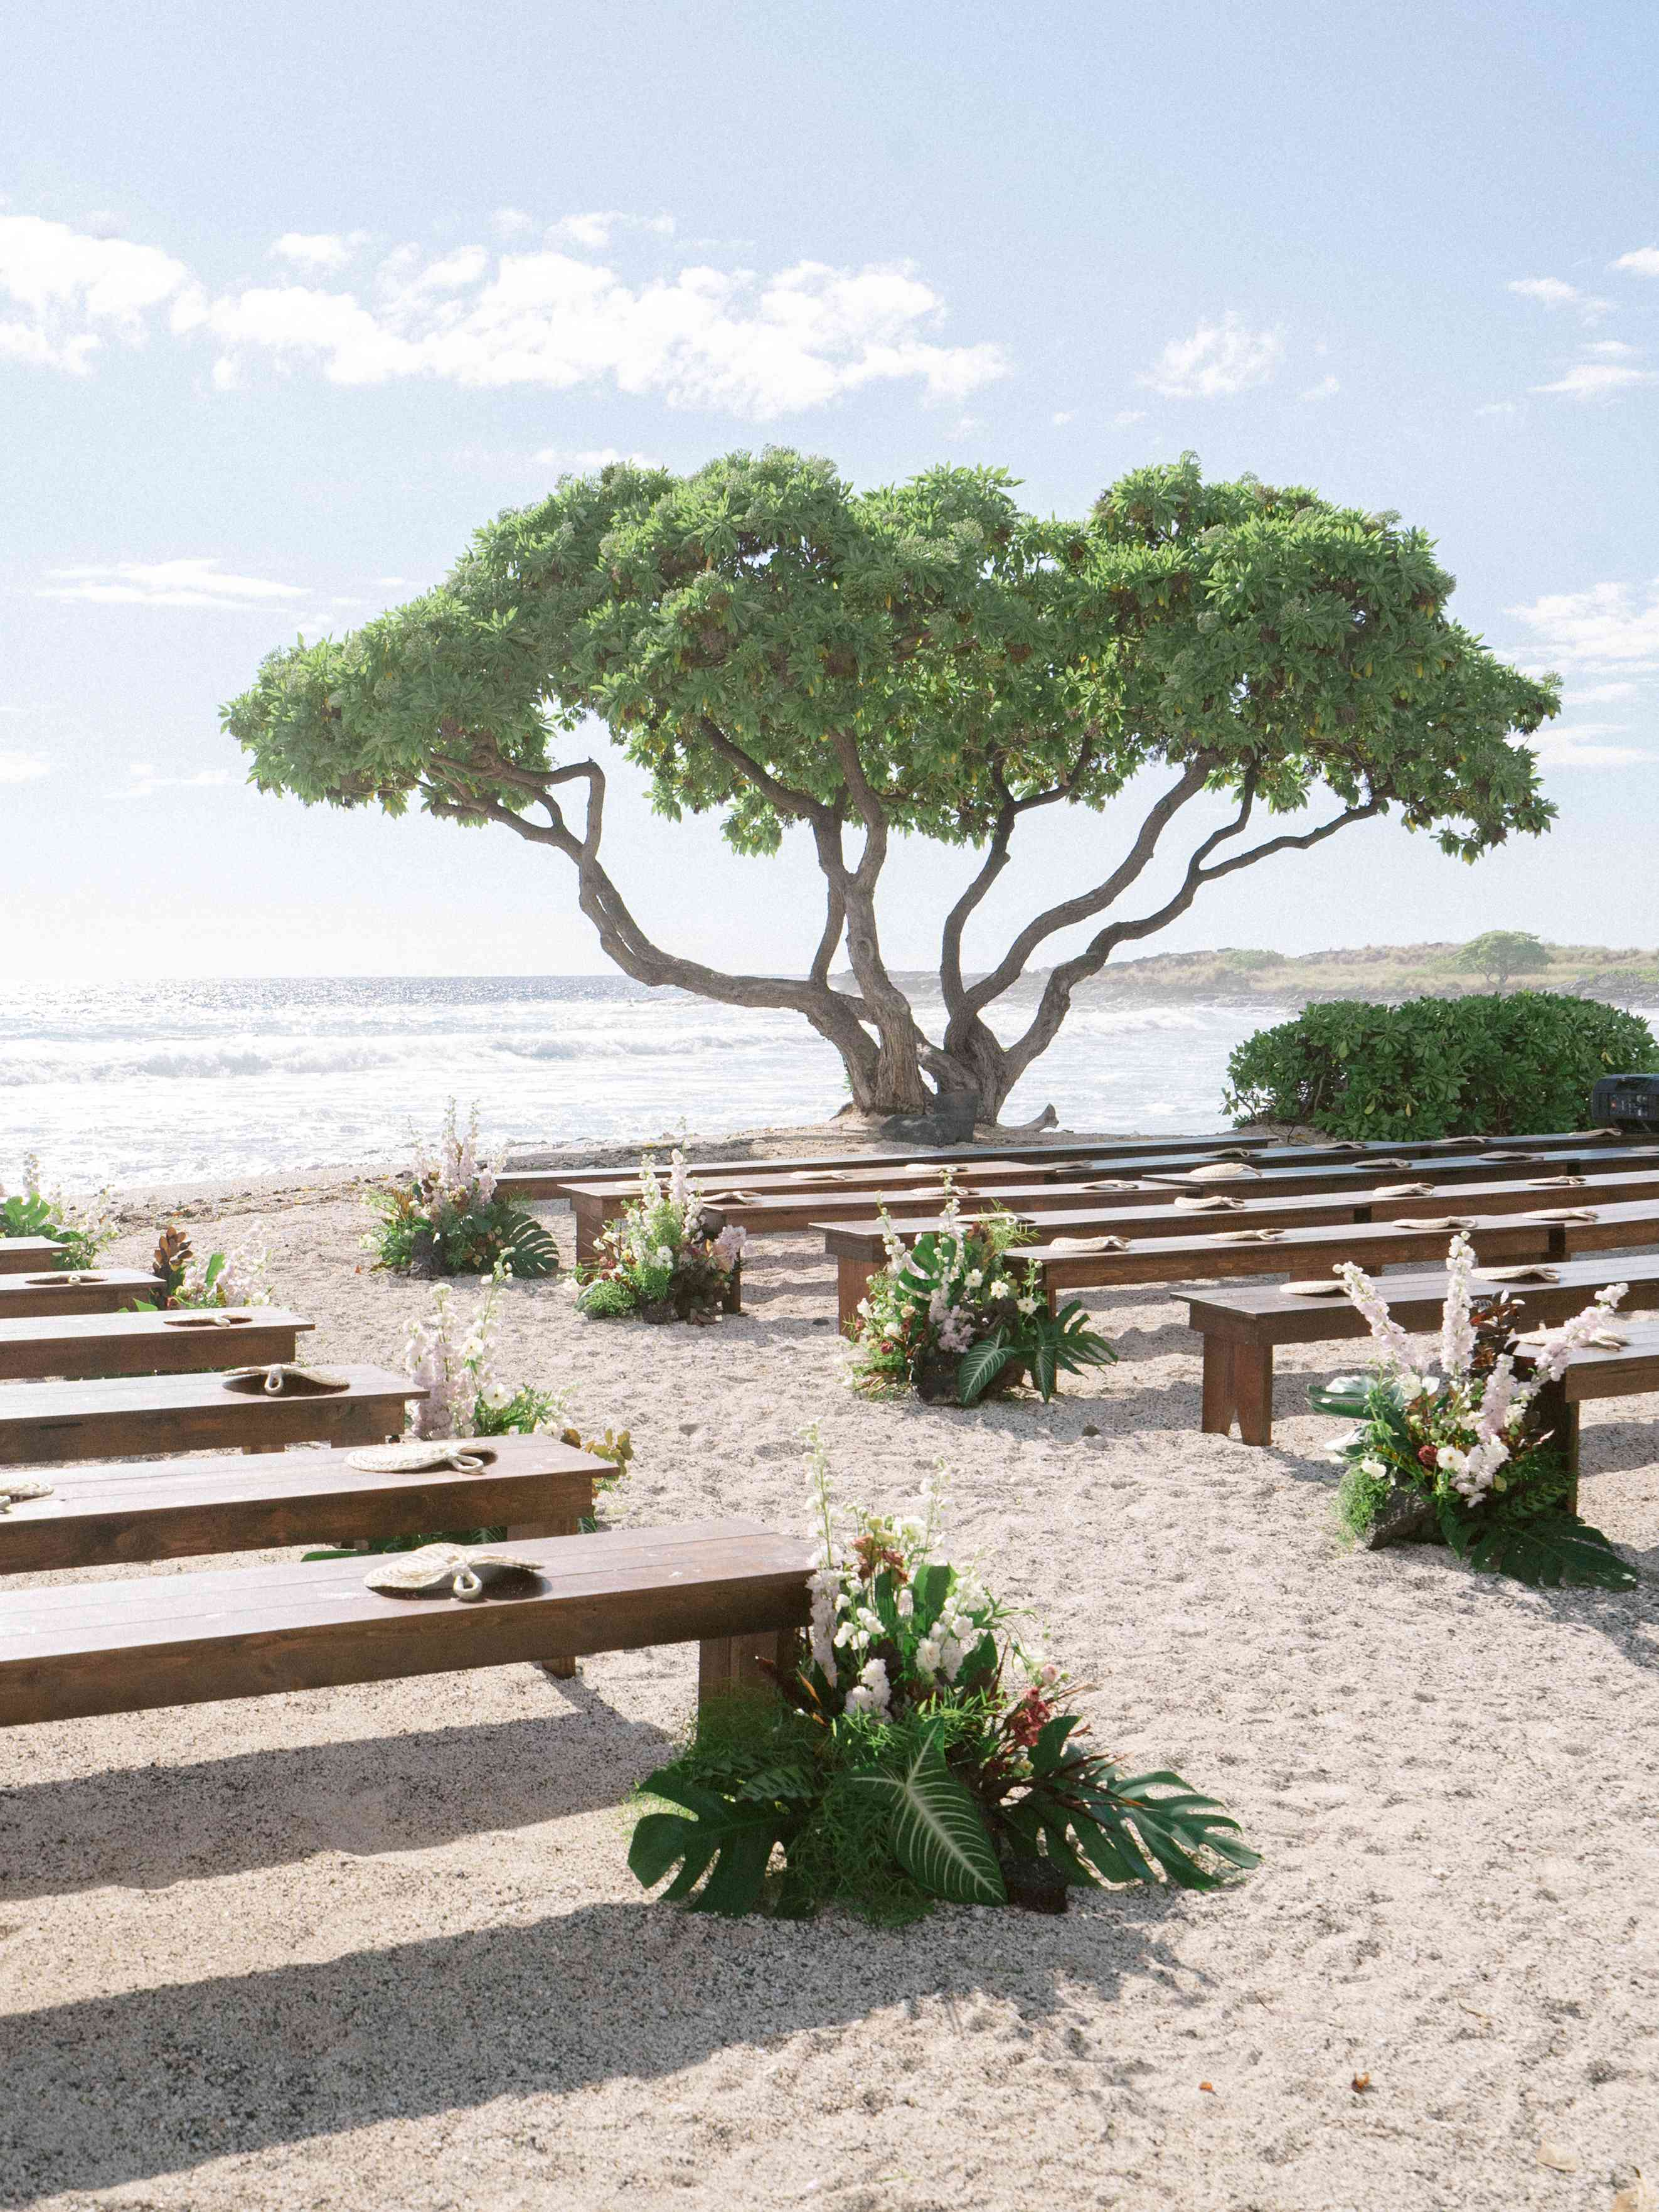 Wooden benches lined the aisle